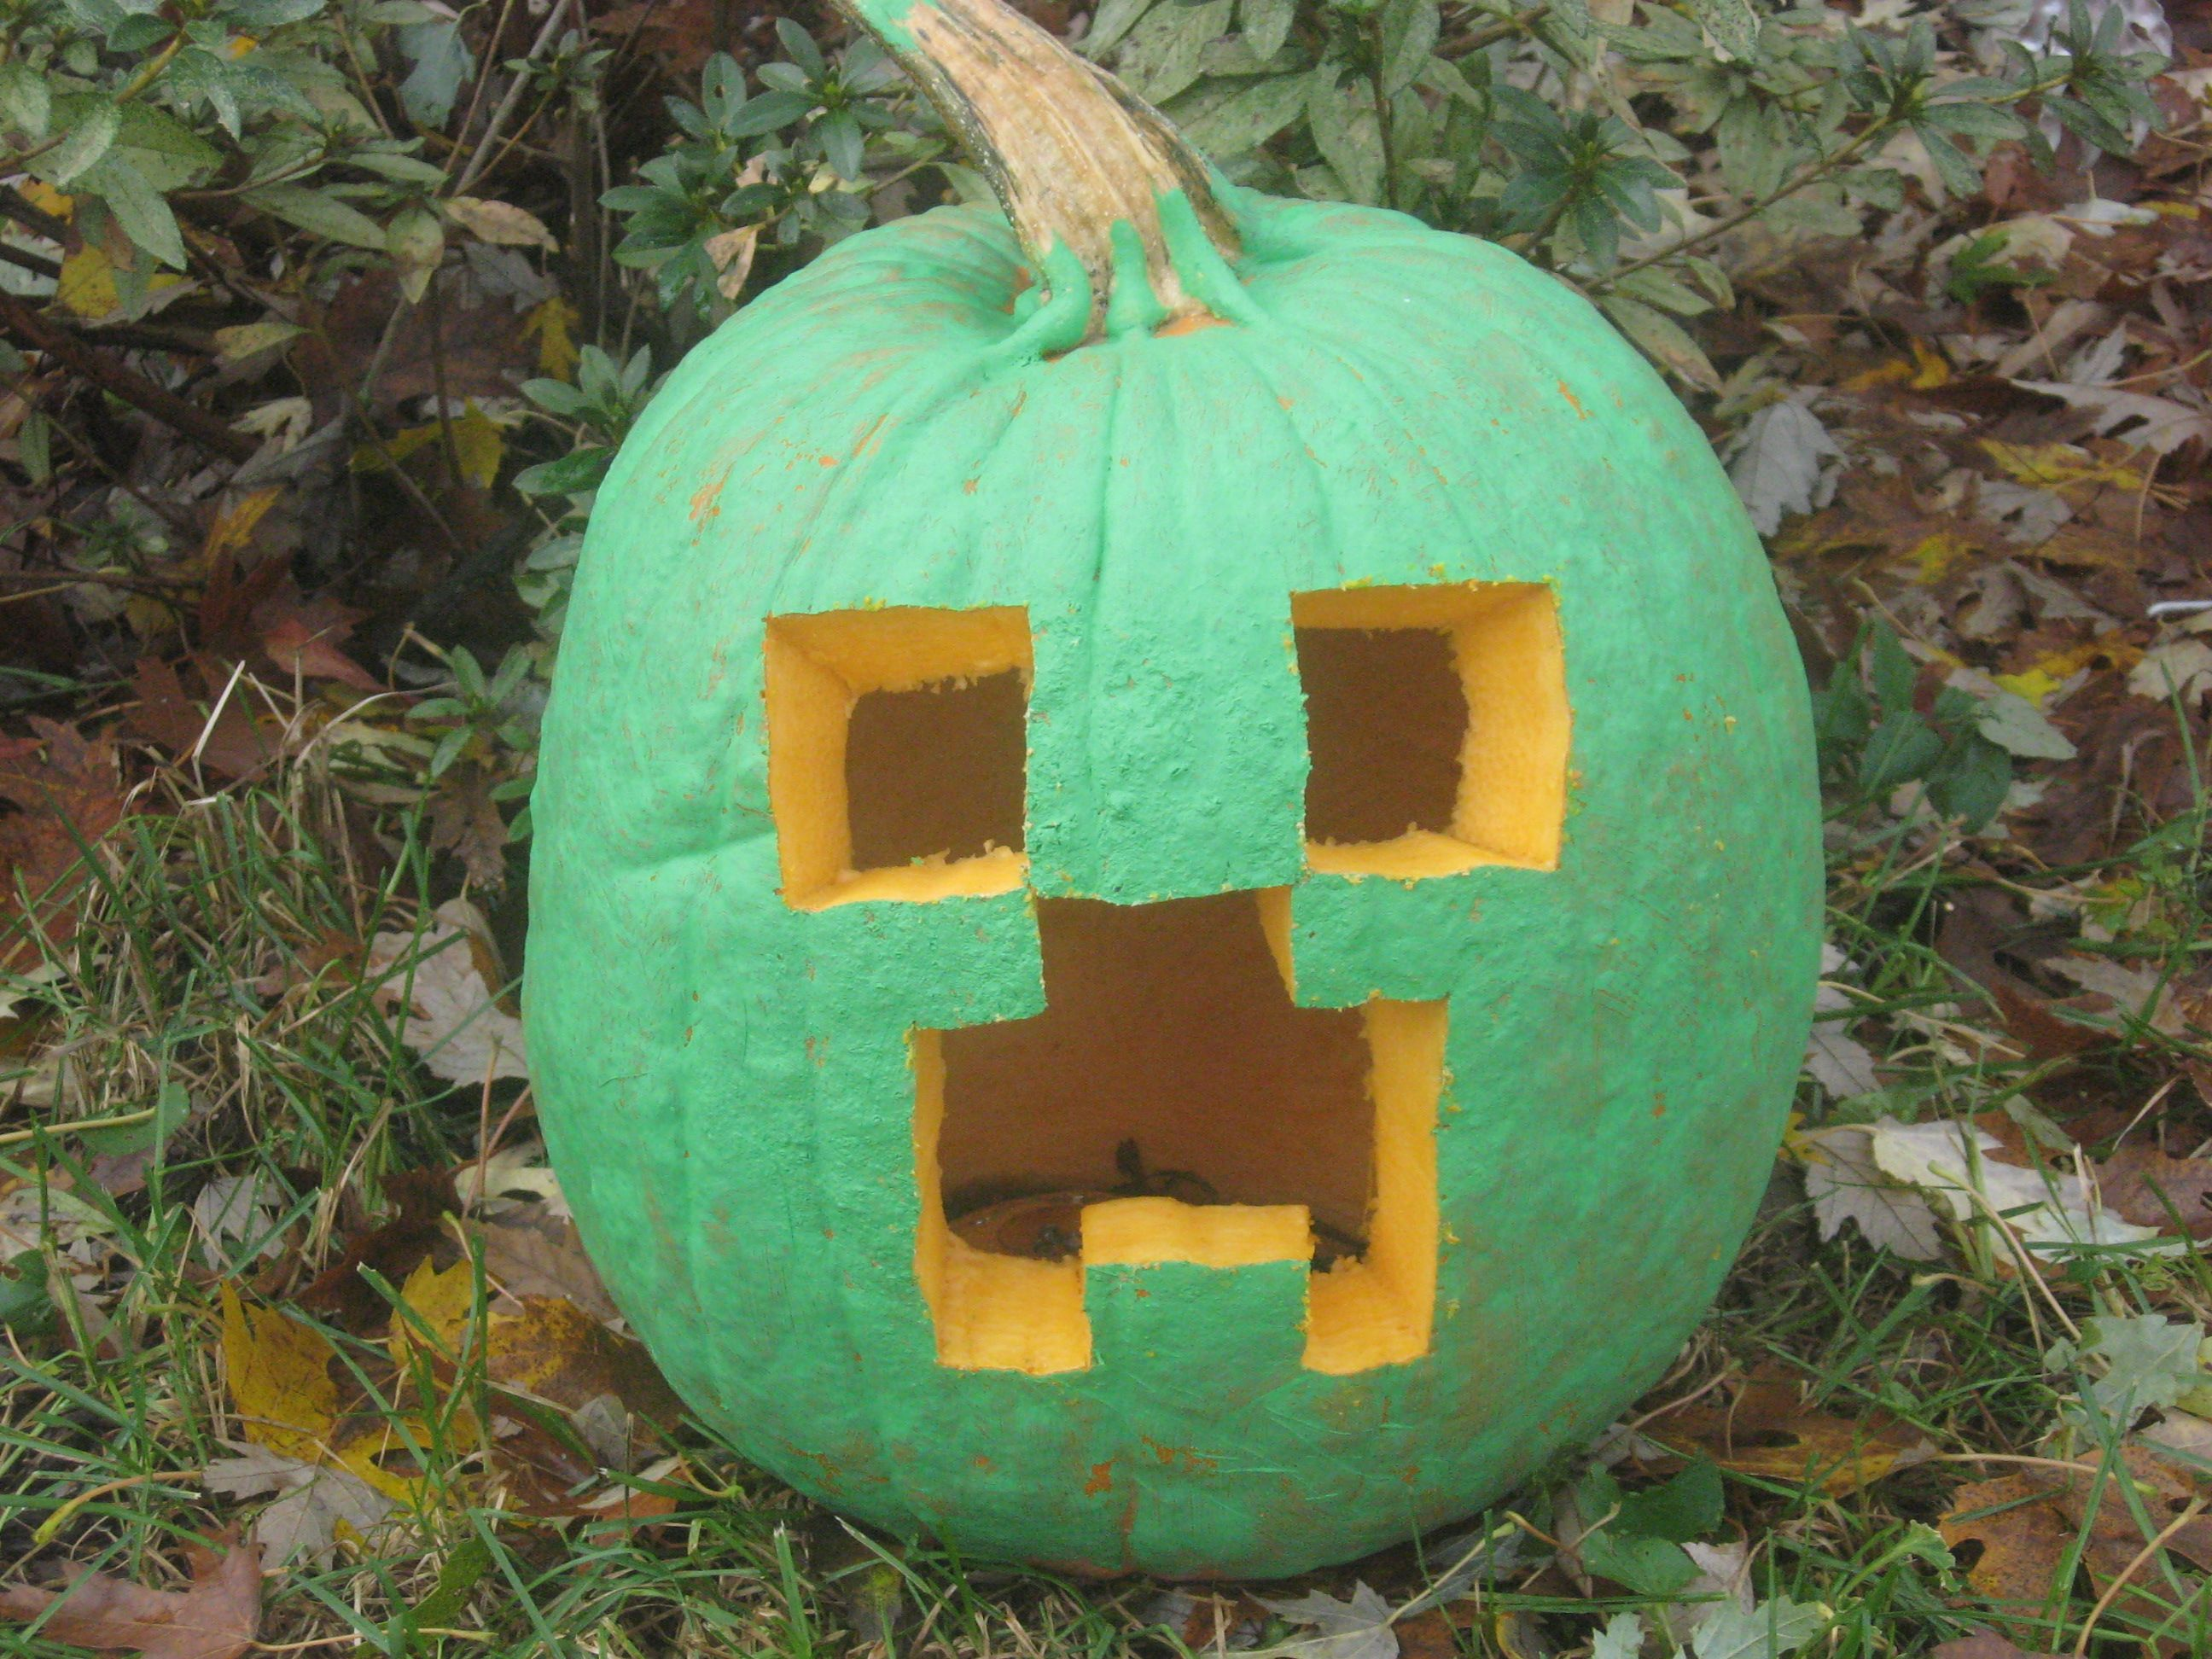 Minecraft Creeper Jack O Lantern Pumpkin Carving Holiday Halloween